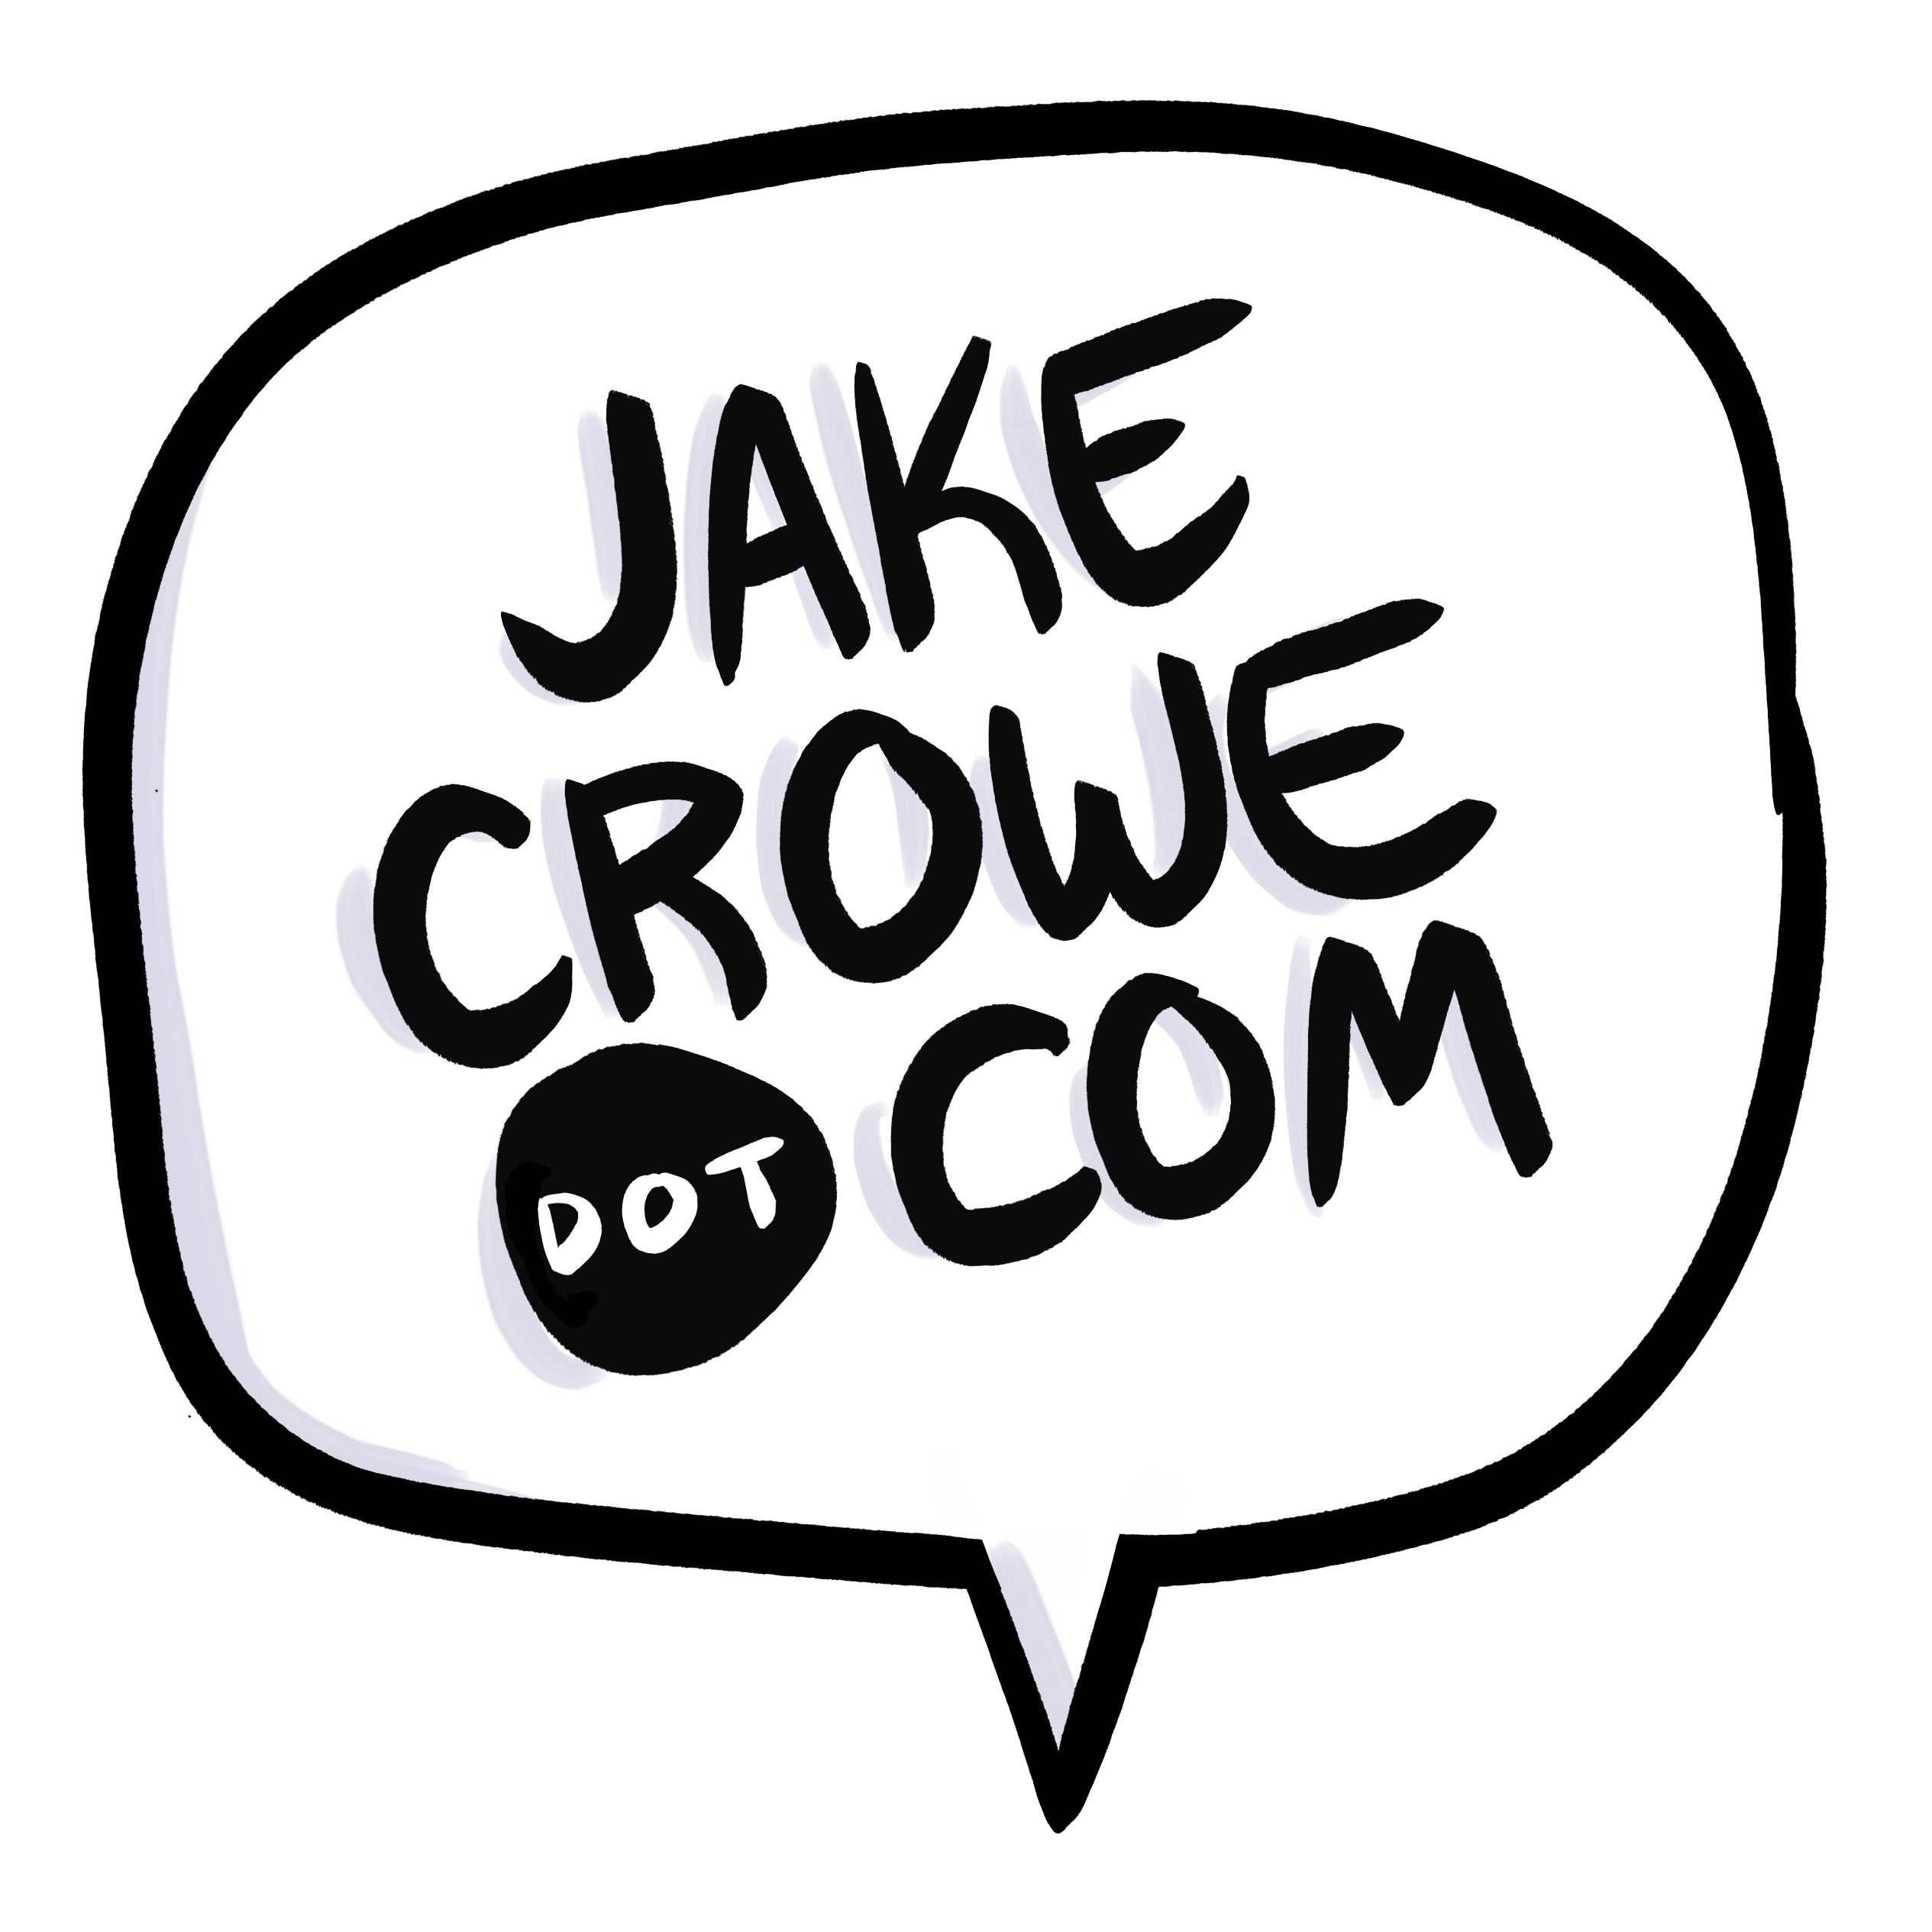 jake crowe dot com